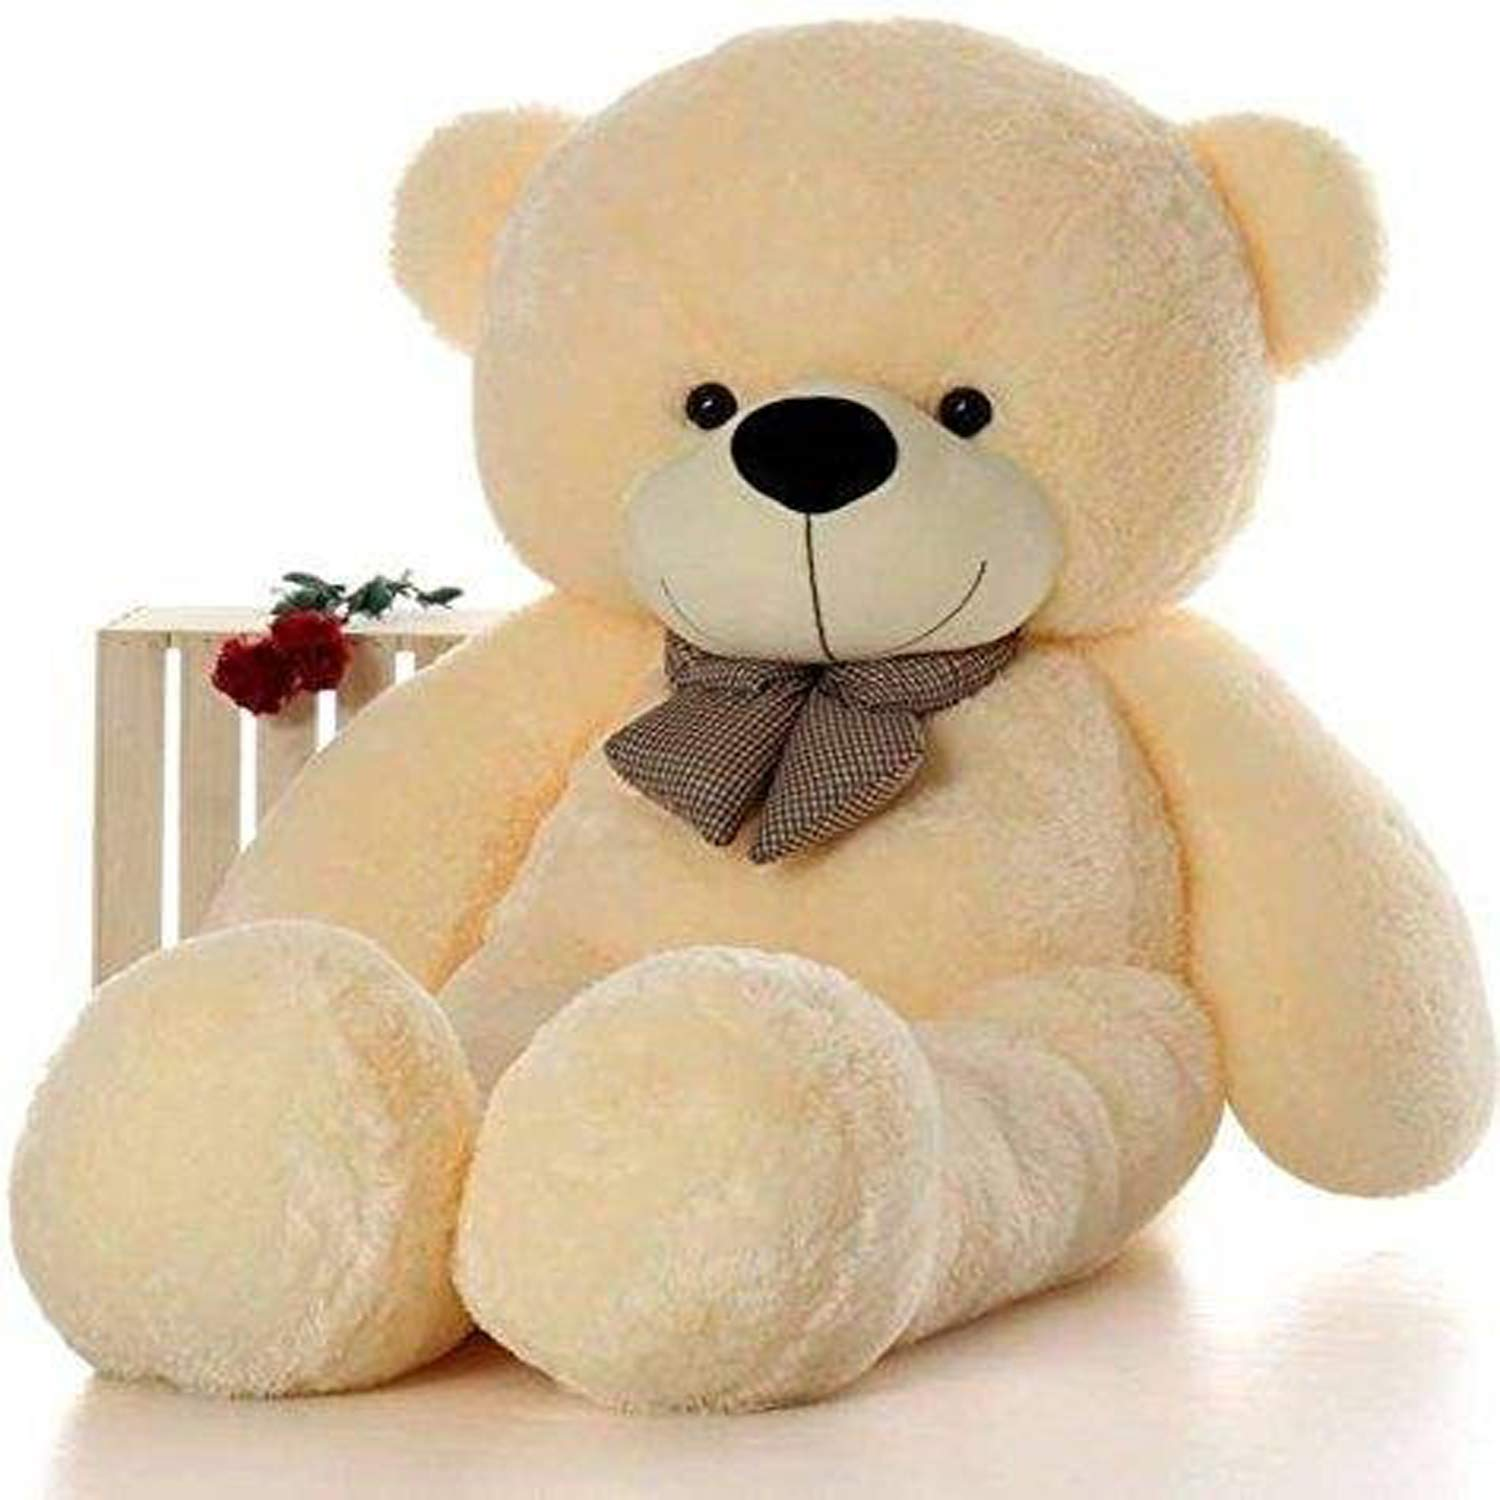 For 485/-(85% Off) CLICK4DEAL 4 Feet Cream Teddy Bear - 122Cm at Amazon India